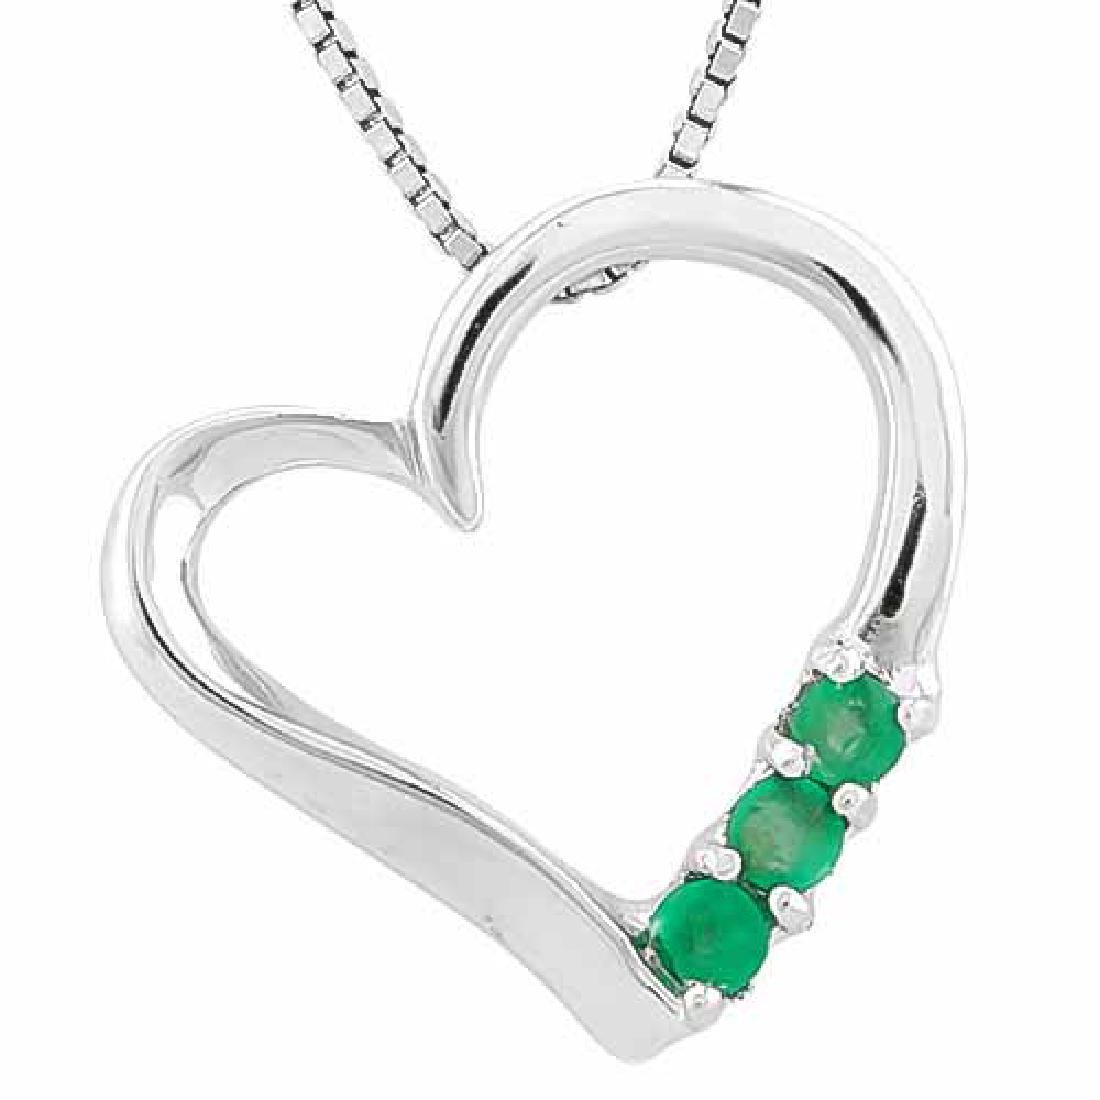 1/3 CARAT EMERALD 925 STERLING SILVER PENDANT